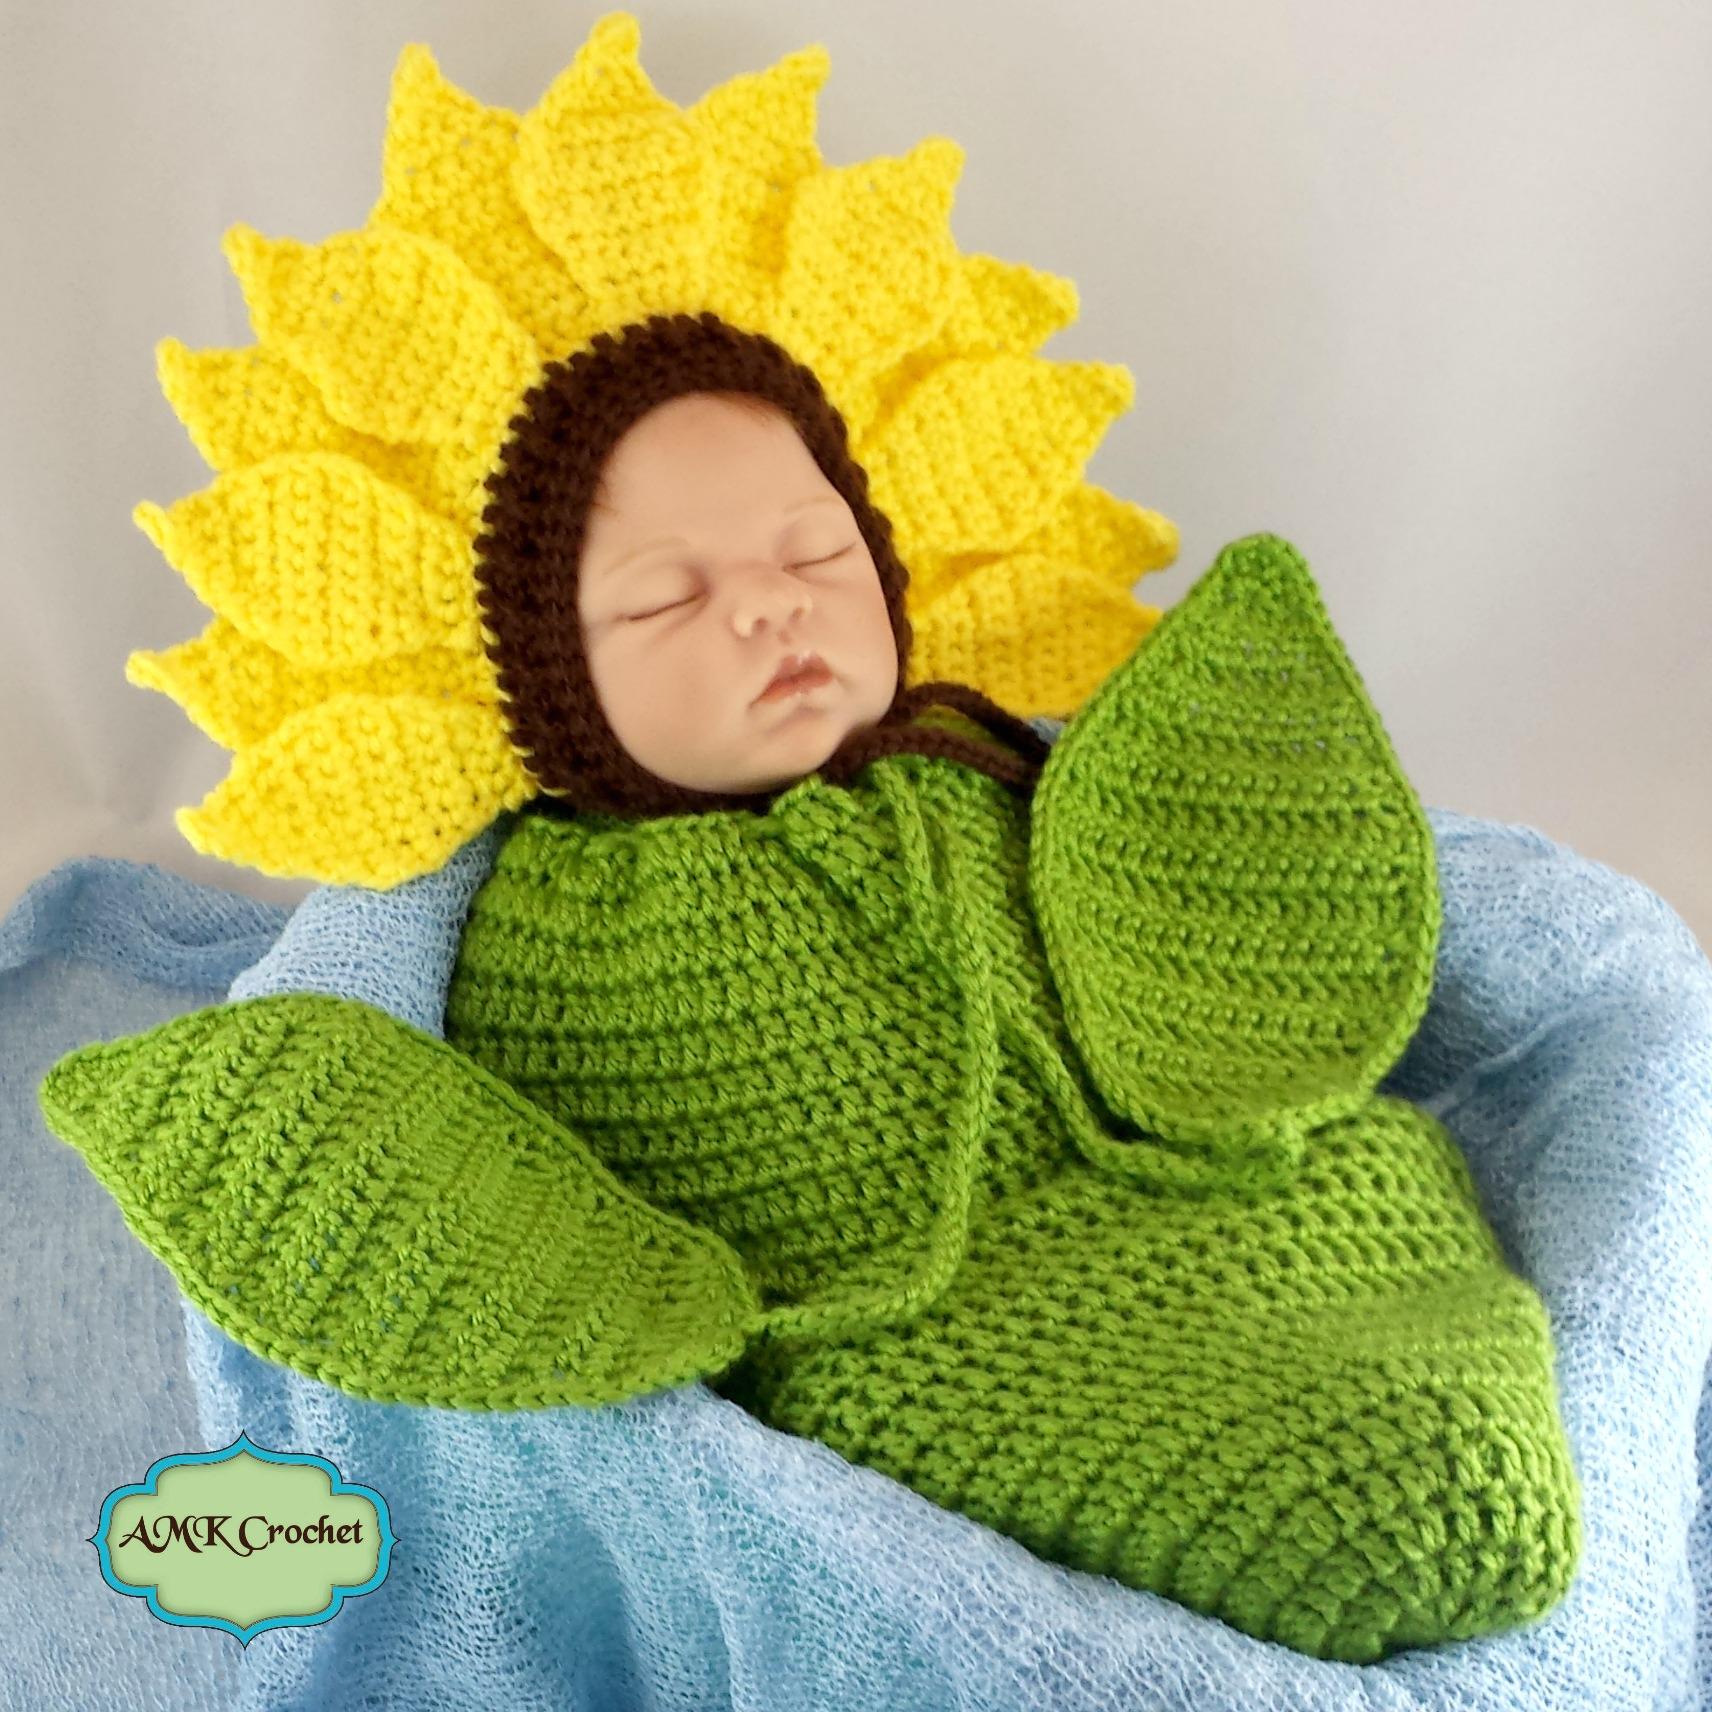 crochet newborn sunflower photo prop pattern amk crochet. Black Bedroom Furniture Sets. Home Design Ideas